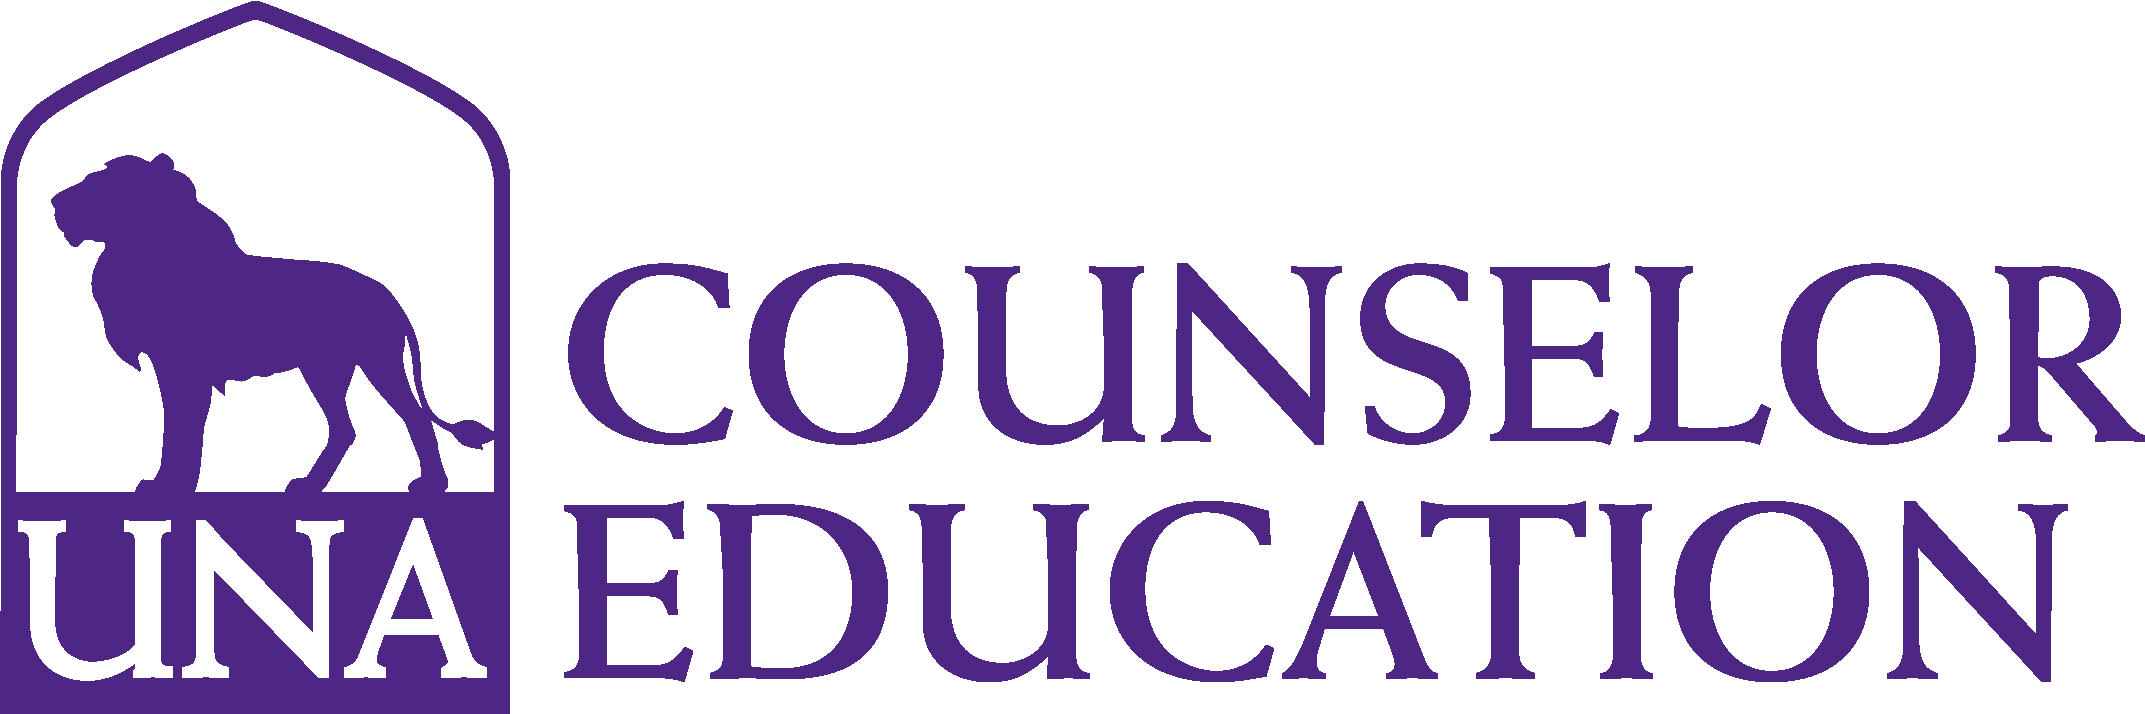 College of Education and Human Sciences - Counselor Education Logo - Purple - Version 3